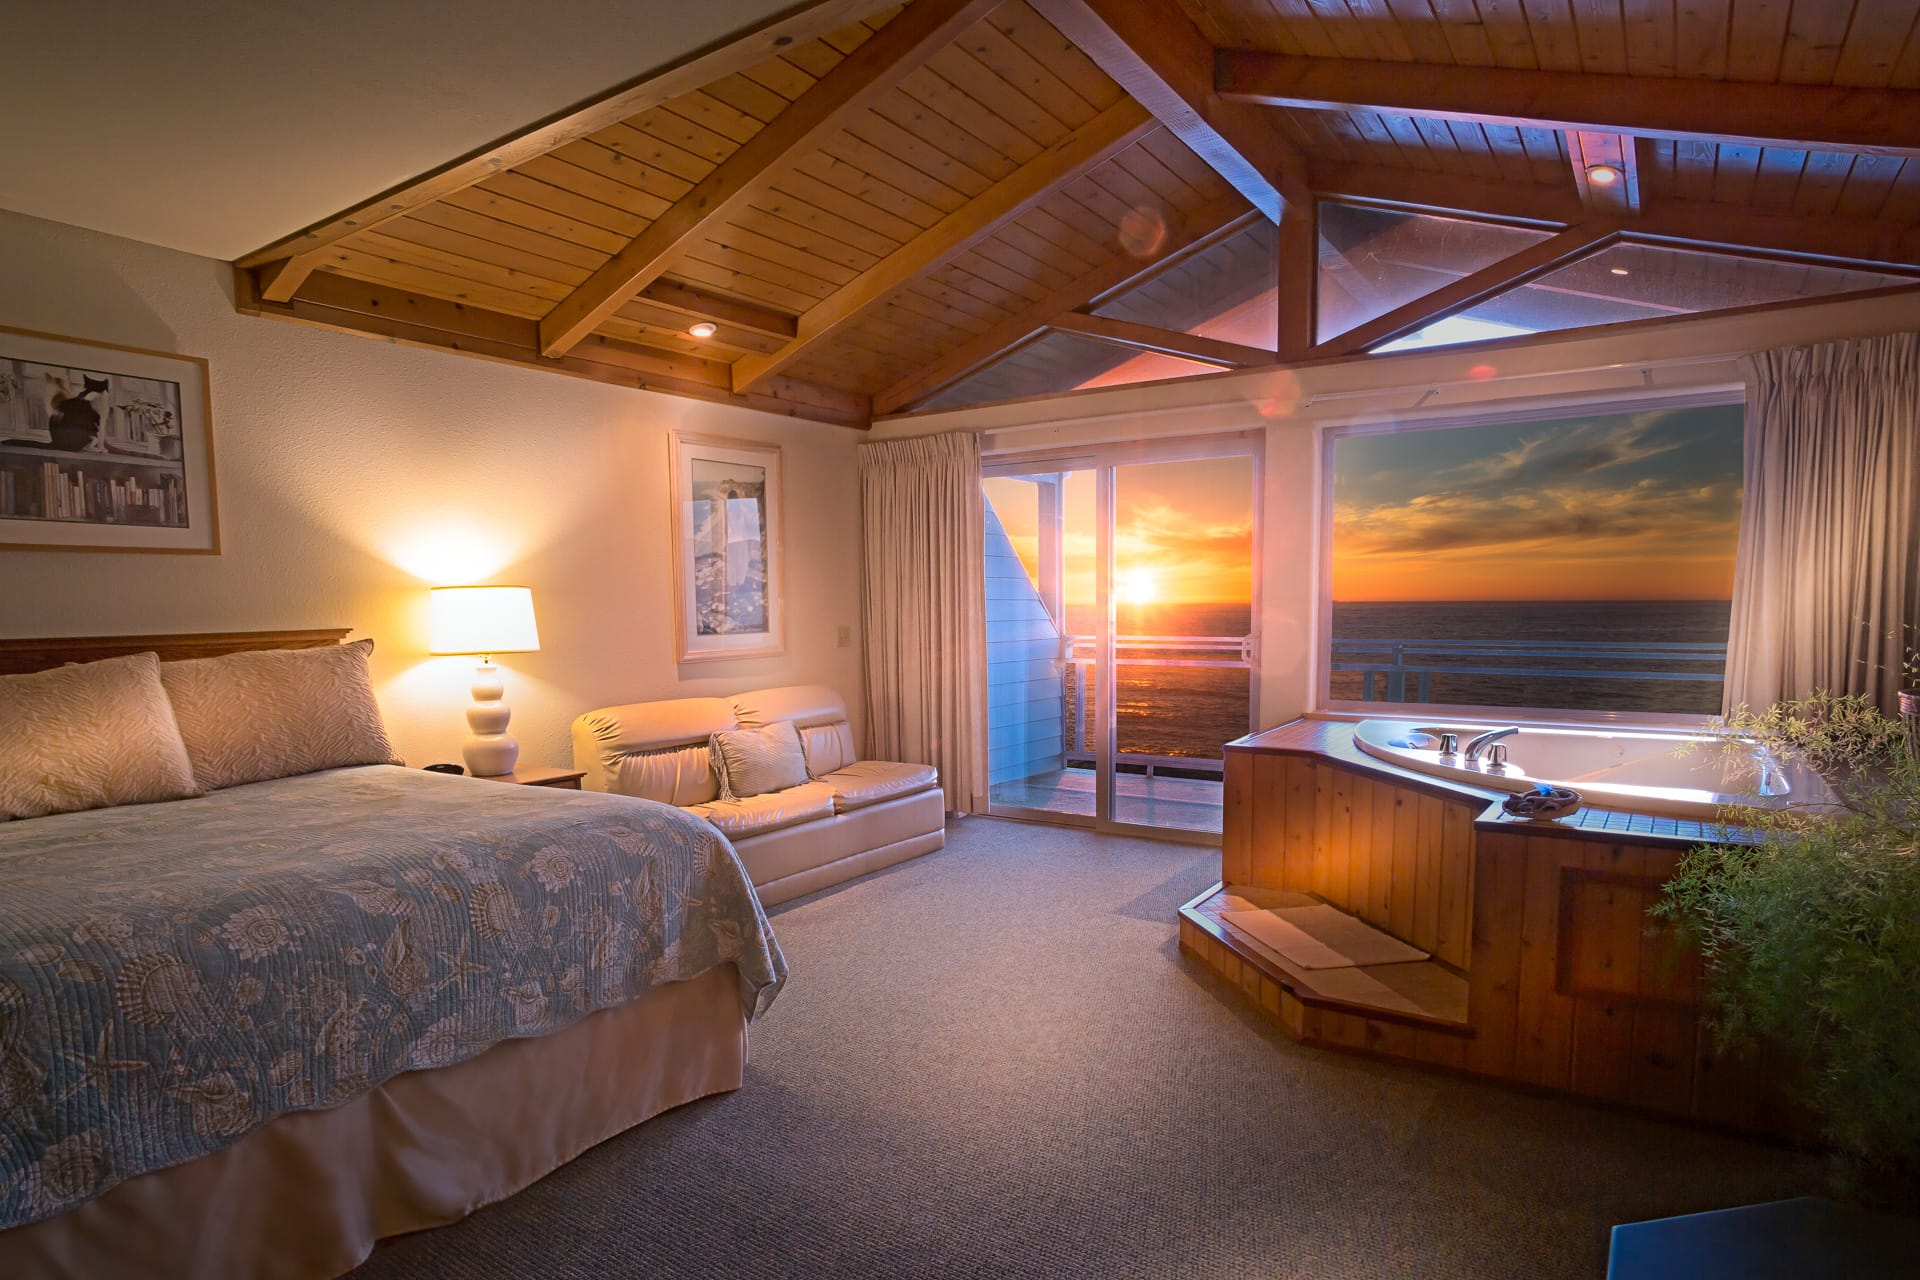 Luxury Oceanfront Deluxe Spa Suite Hotel Room At Inn Of The Lost Coast Shelter Cove In Jacuzzi